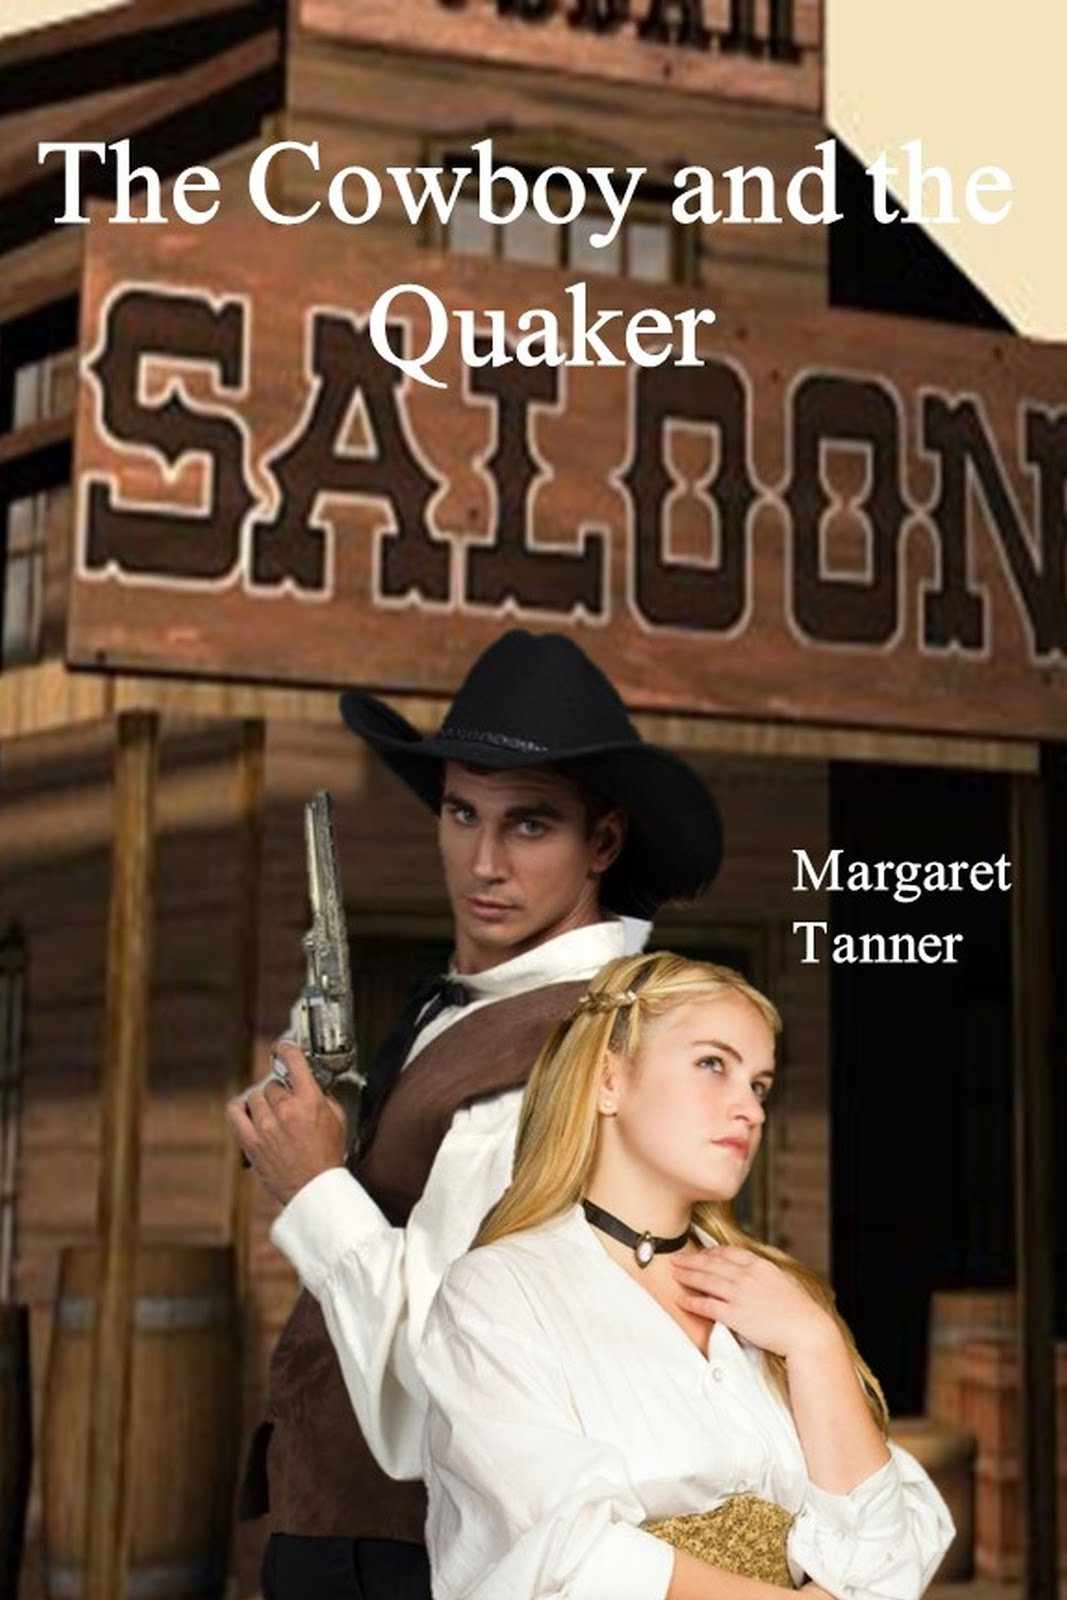 The Cowboy And the Quaker